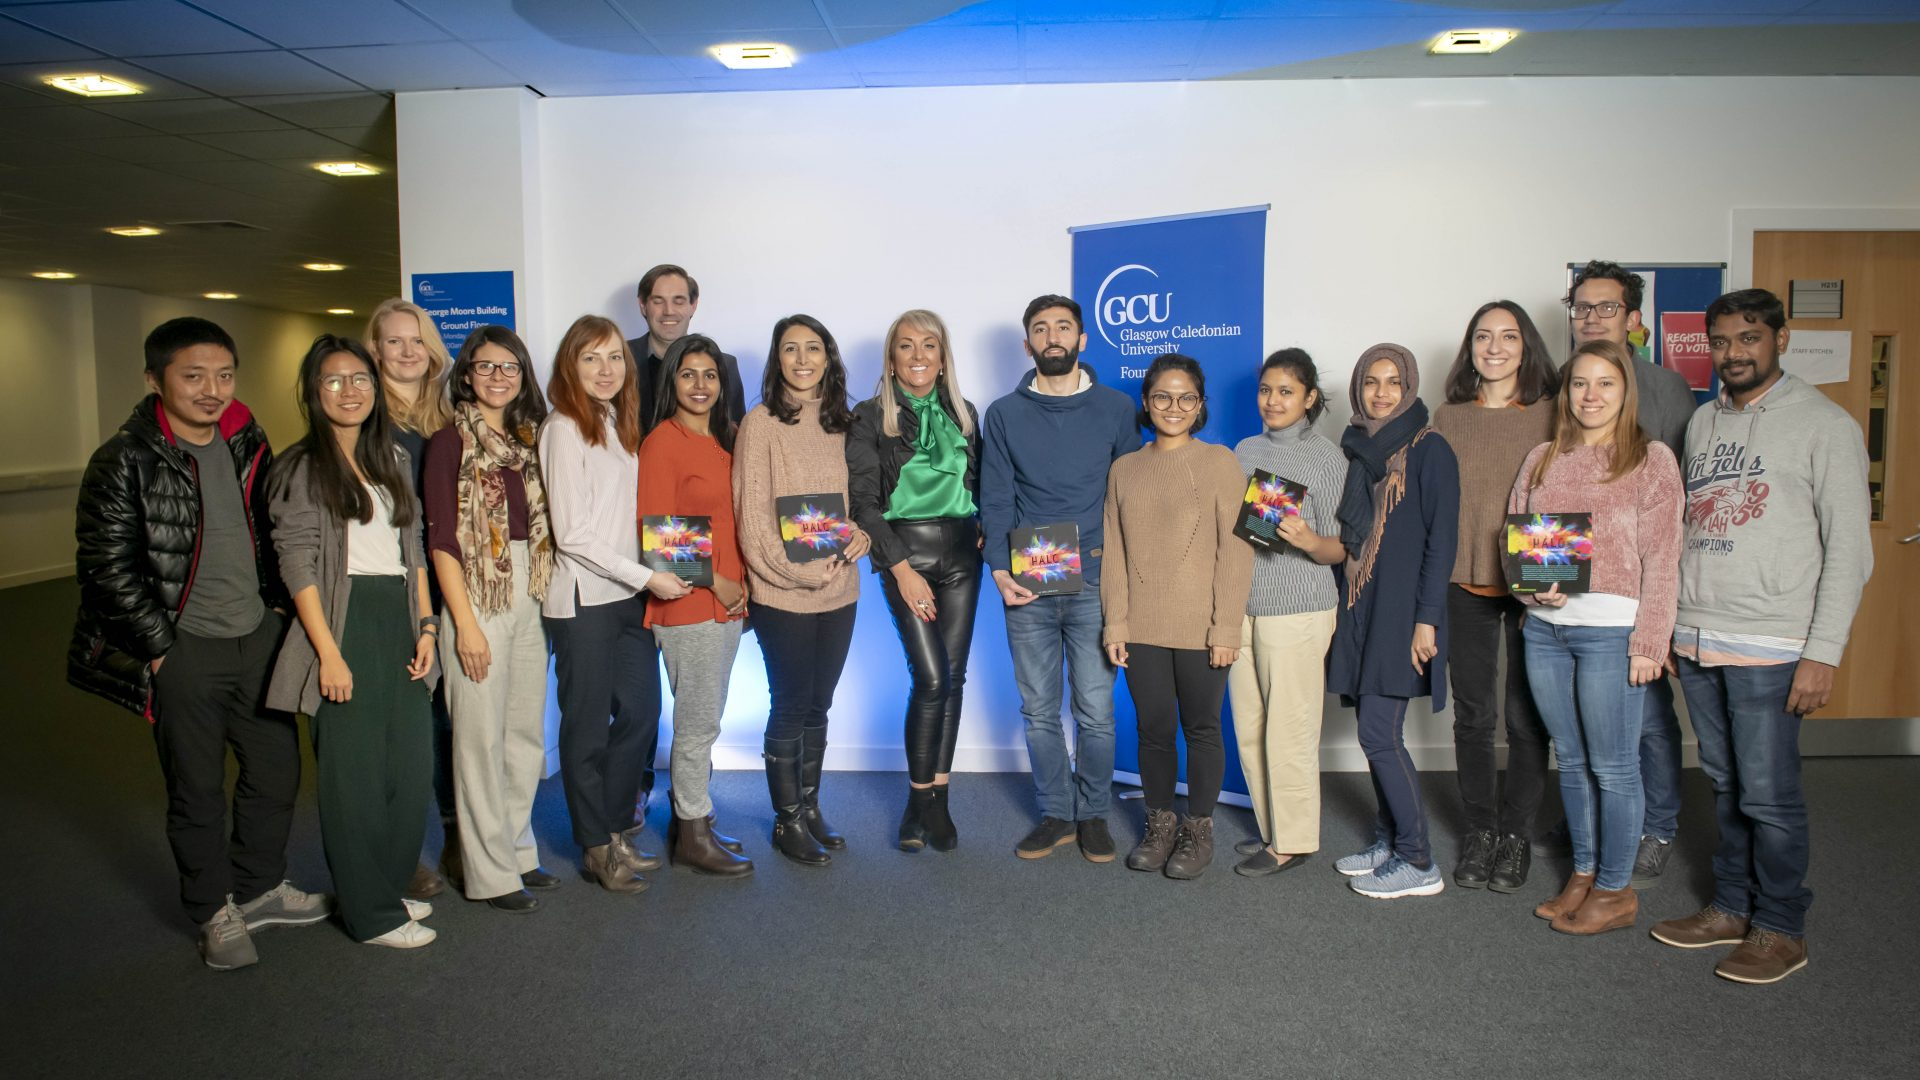 HALO Masterclass at Glasgow Caledonian University